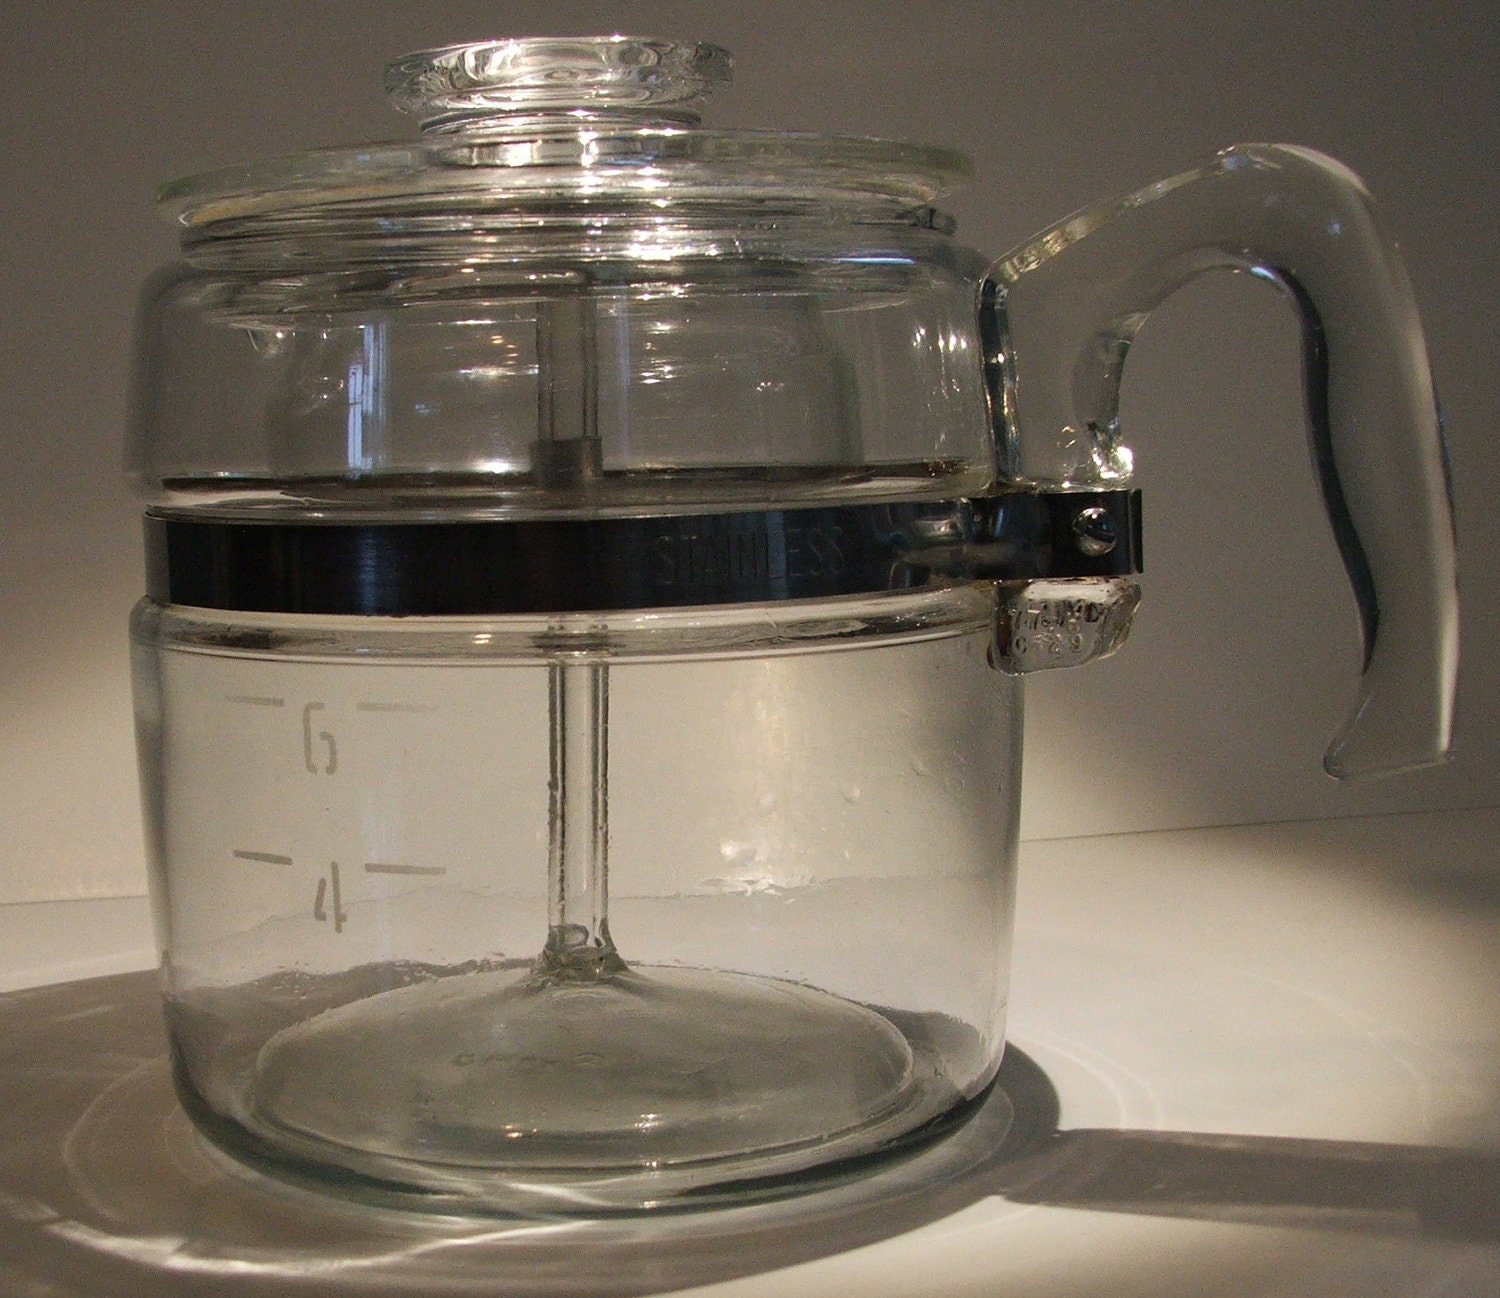 Pyrex Coffee Maker How To Use : vintage Pyrex coffee pot 6 cup 7756-B complete